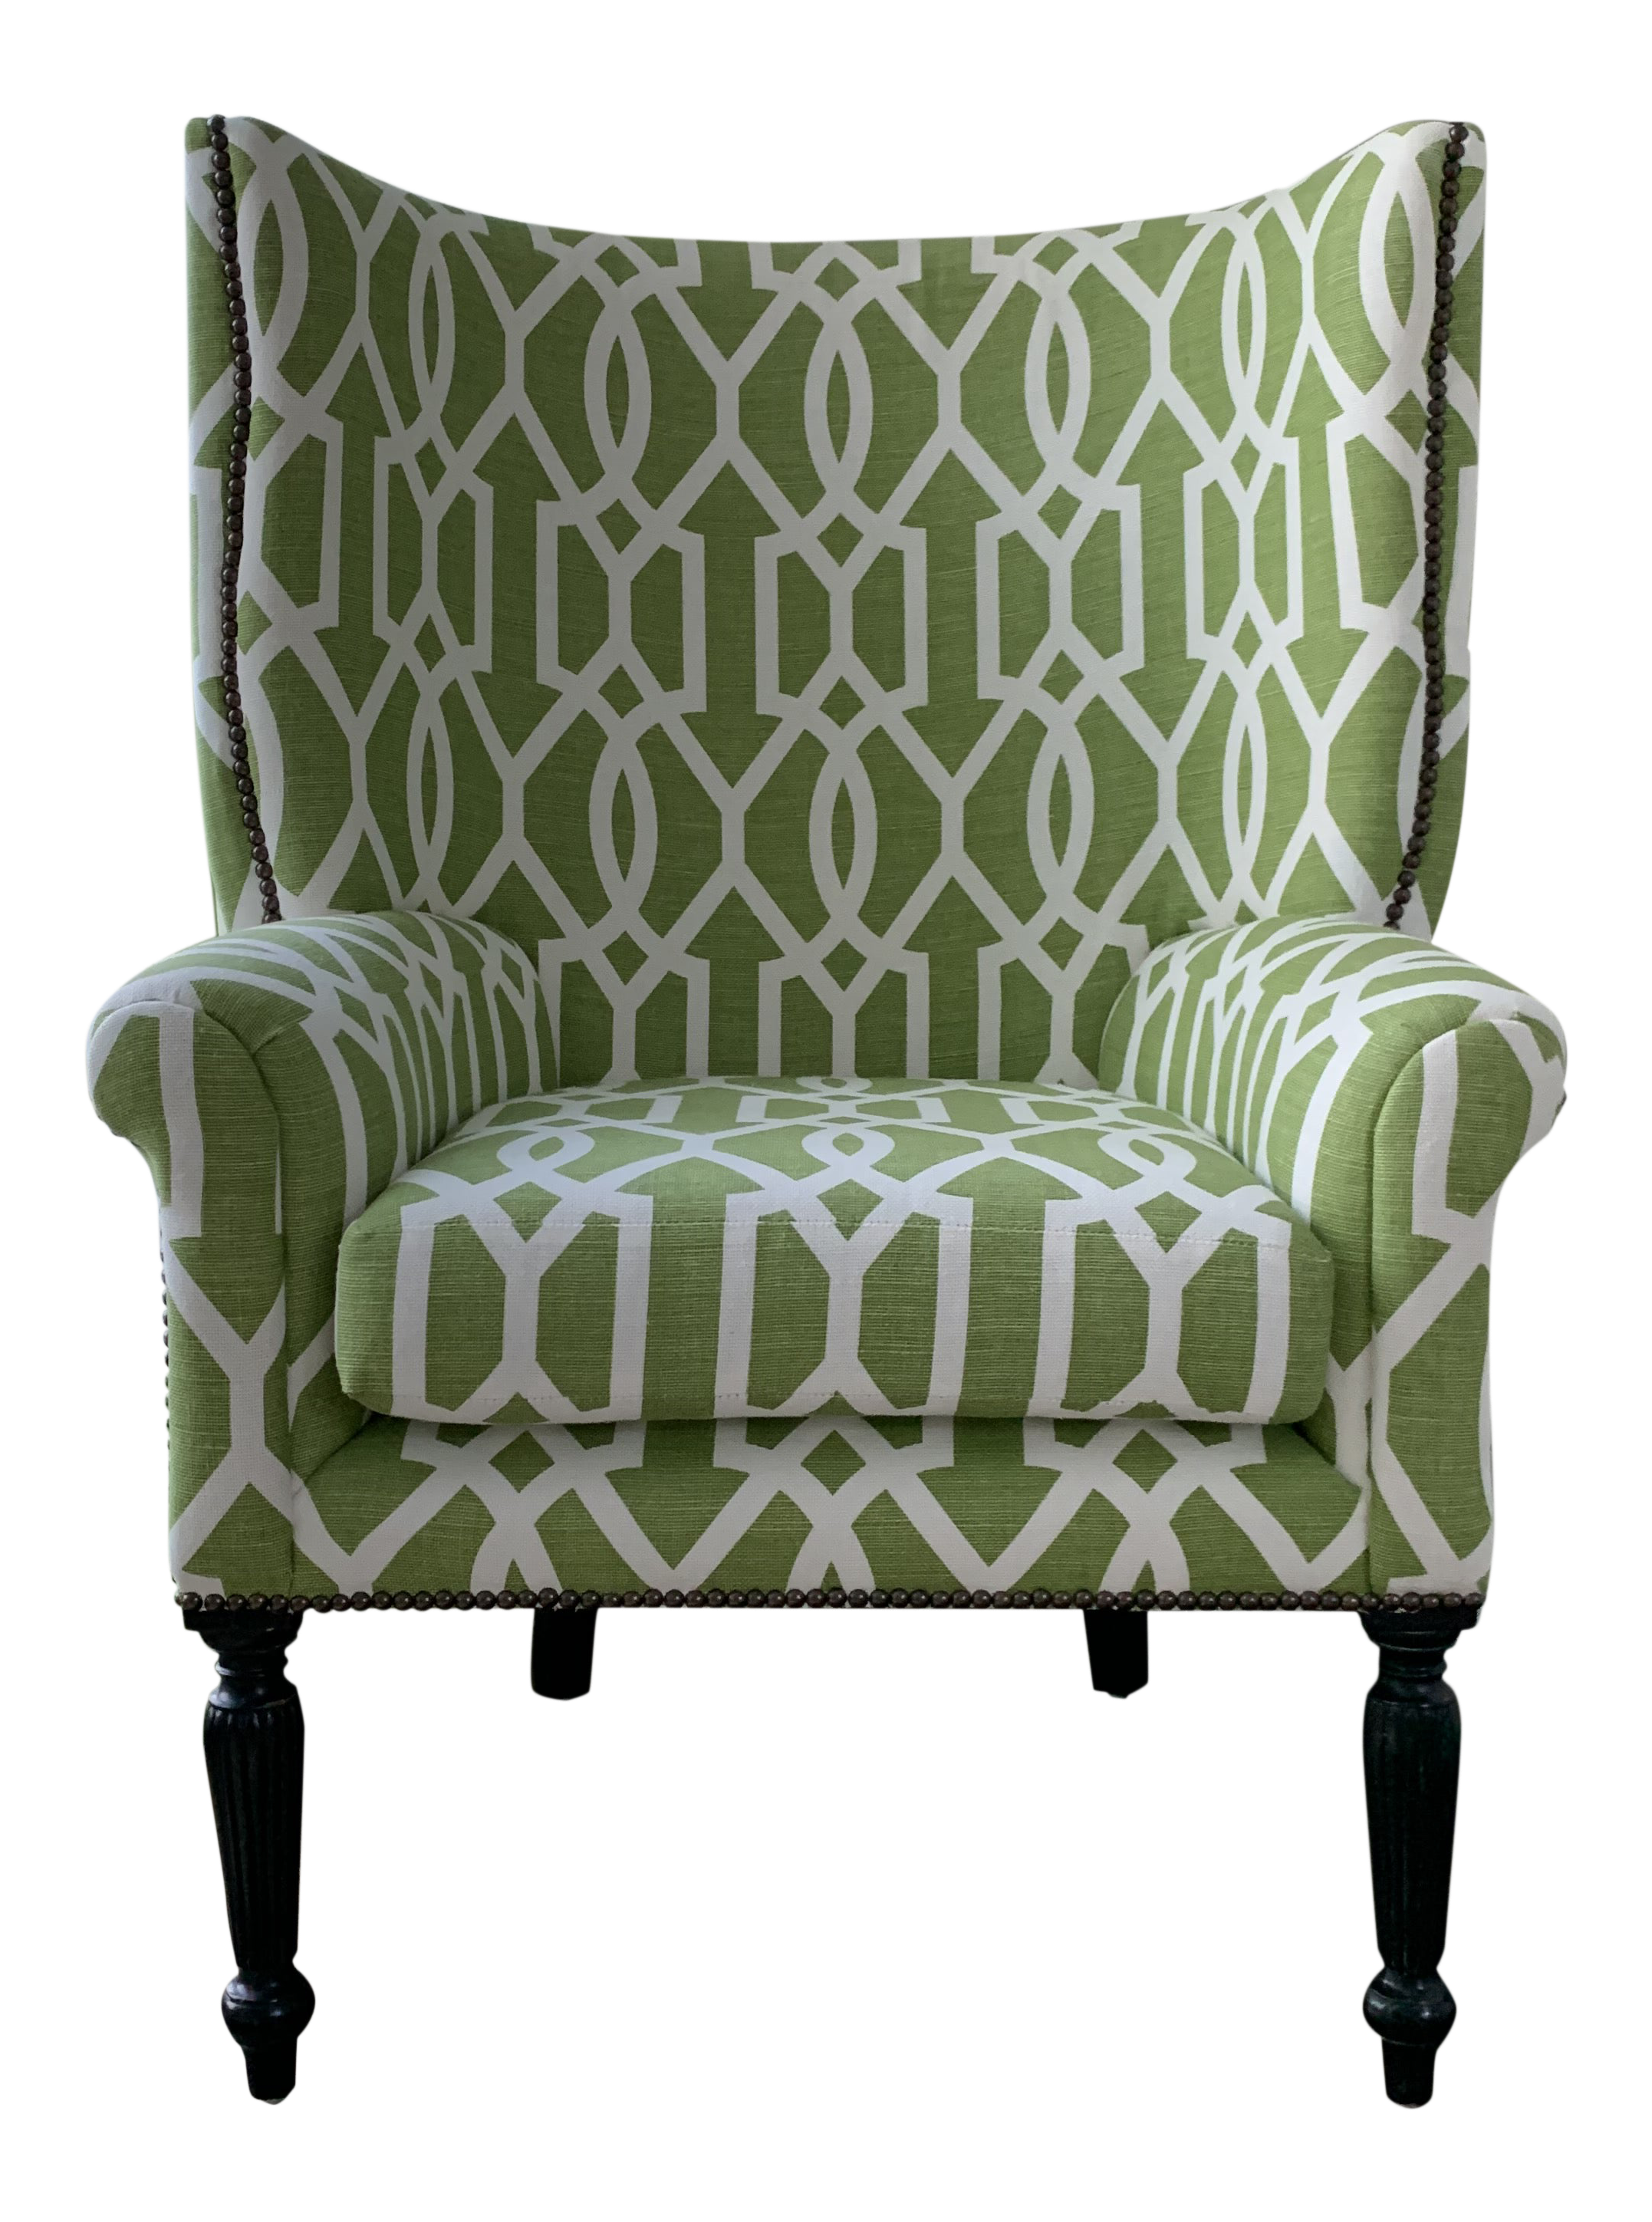 Custom Upholstered Victoria Hagan Wingback Chair